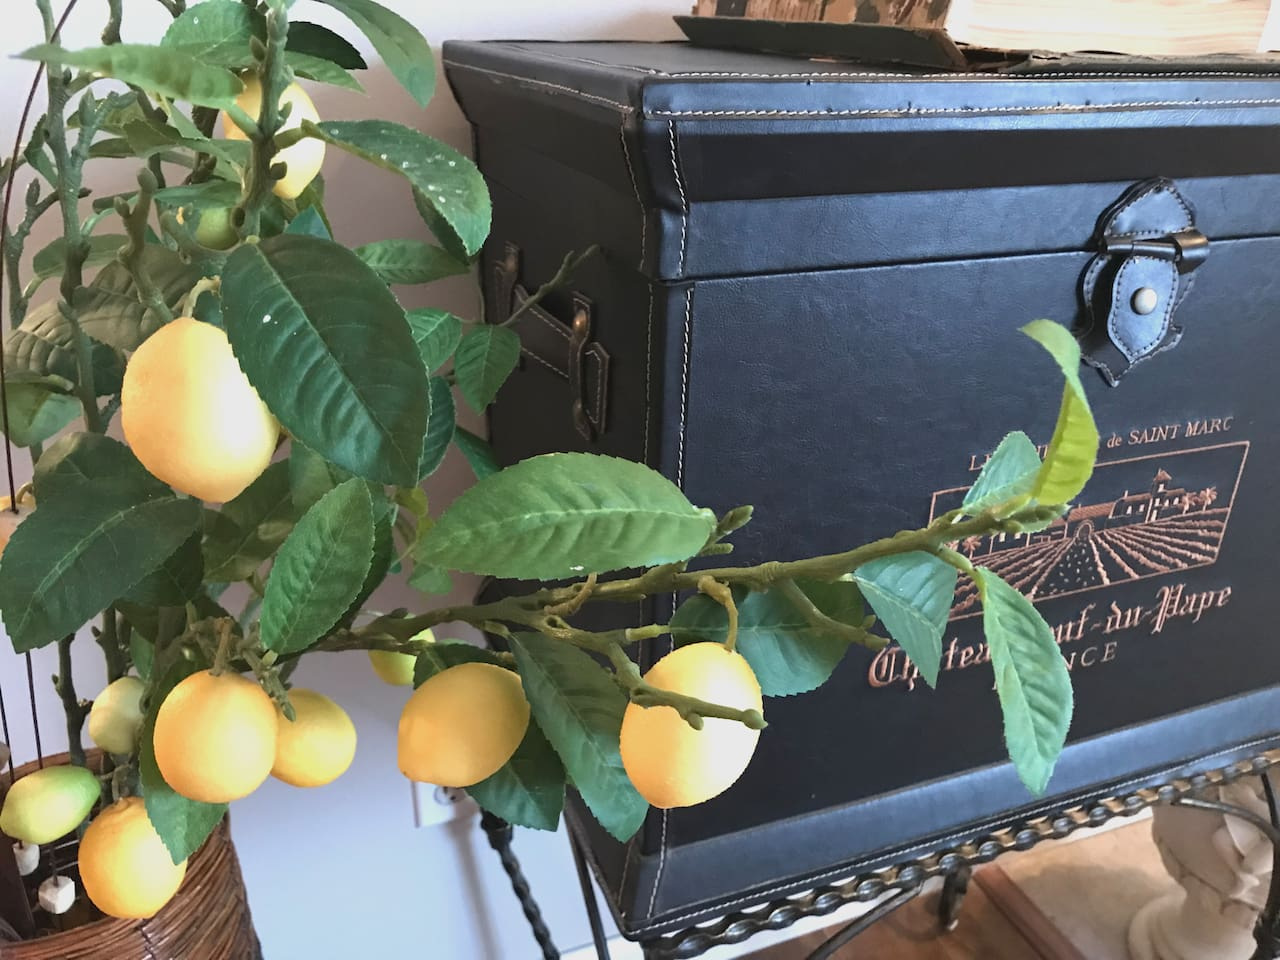 Lemon Tree Home!!! The beautiful Lemon tree in front of you when you check-in my house.